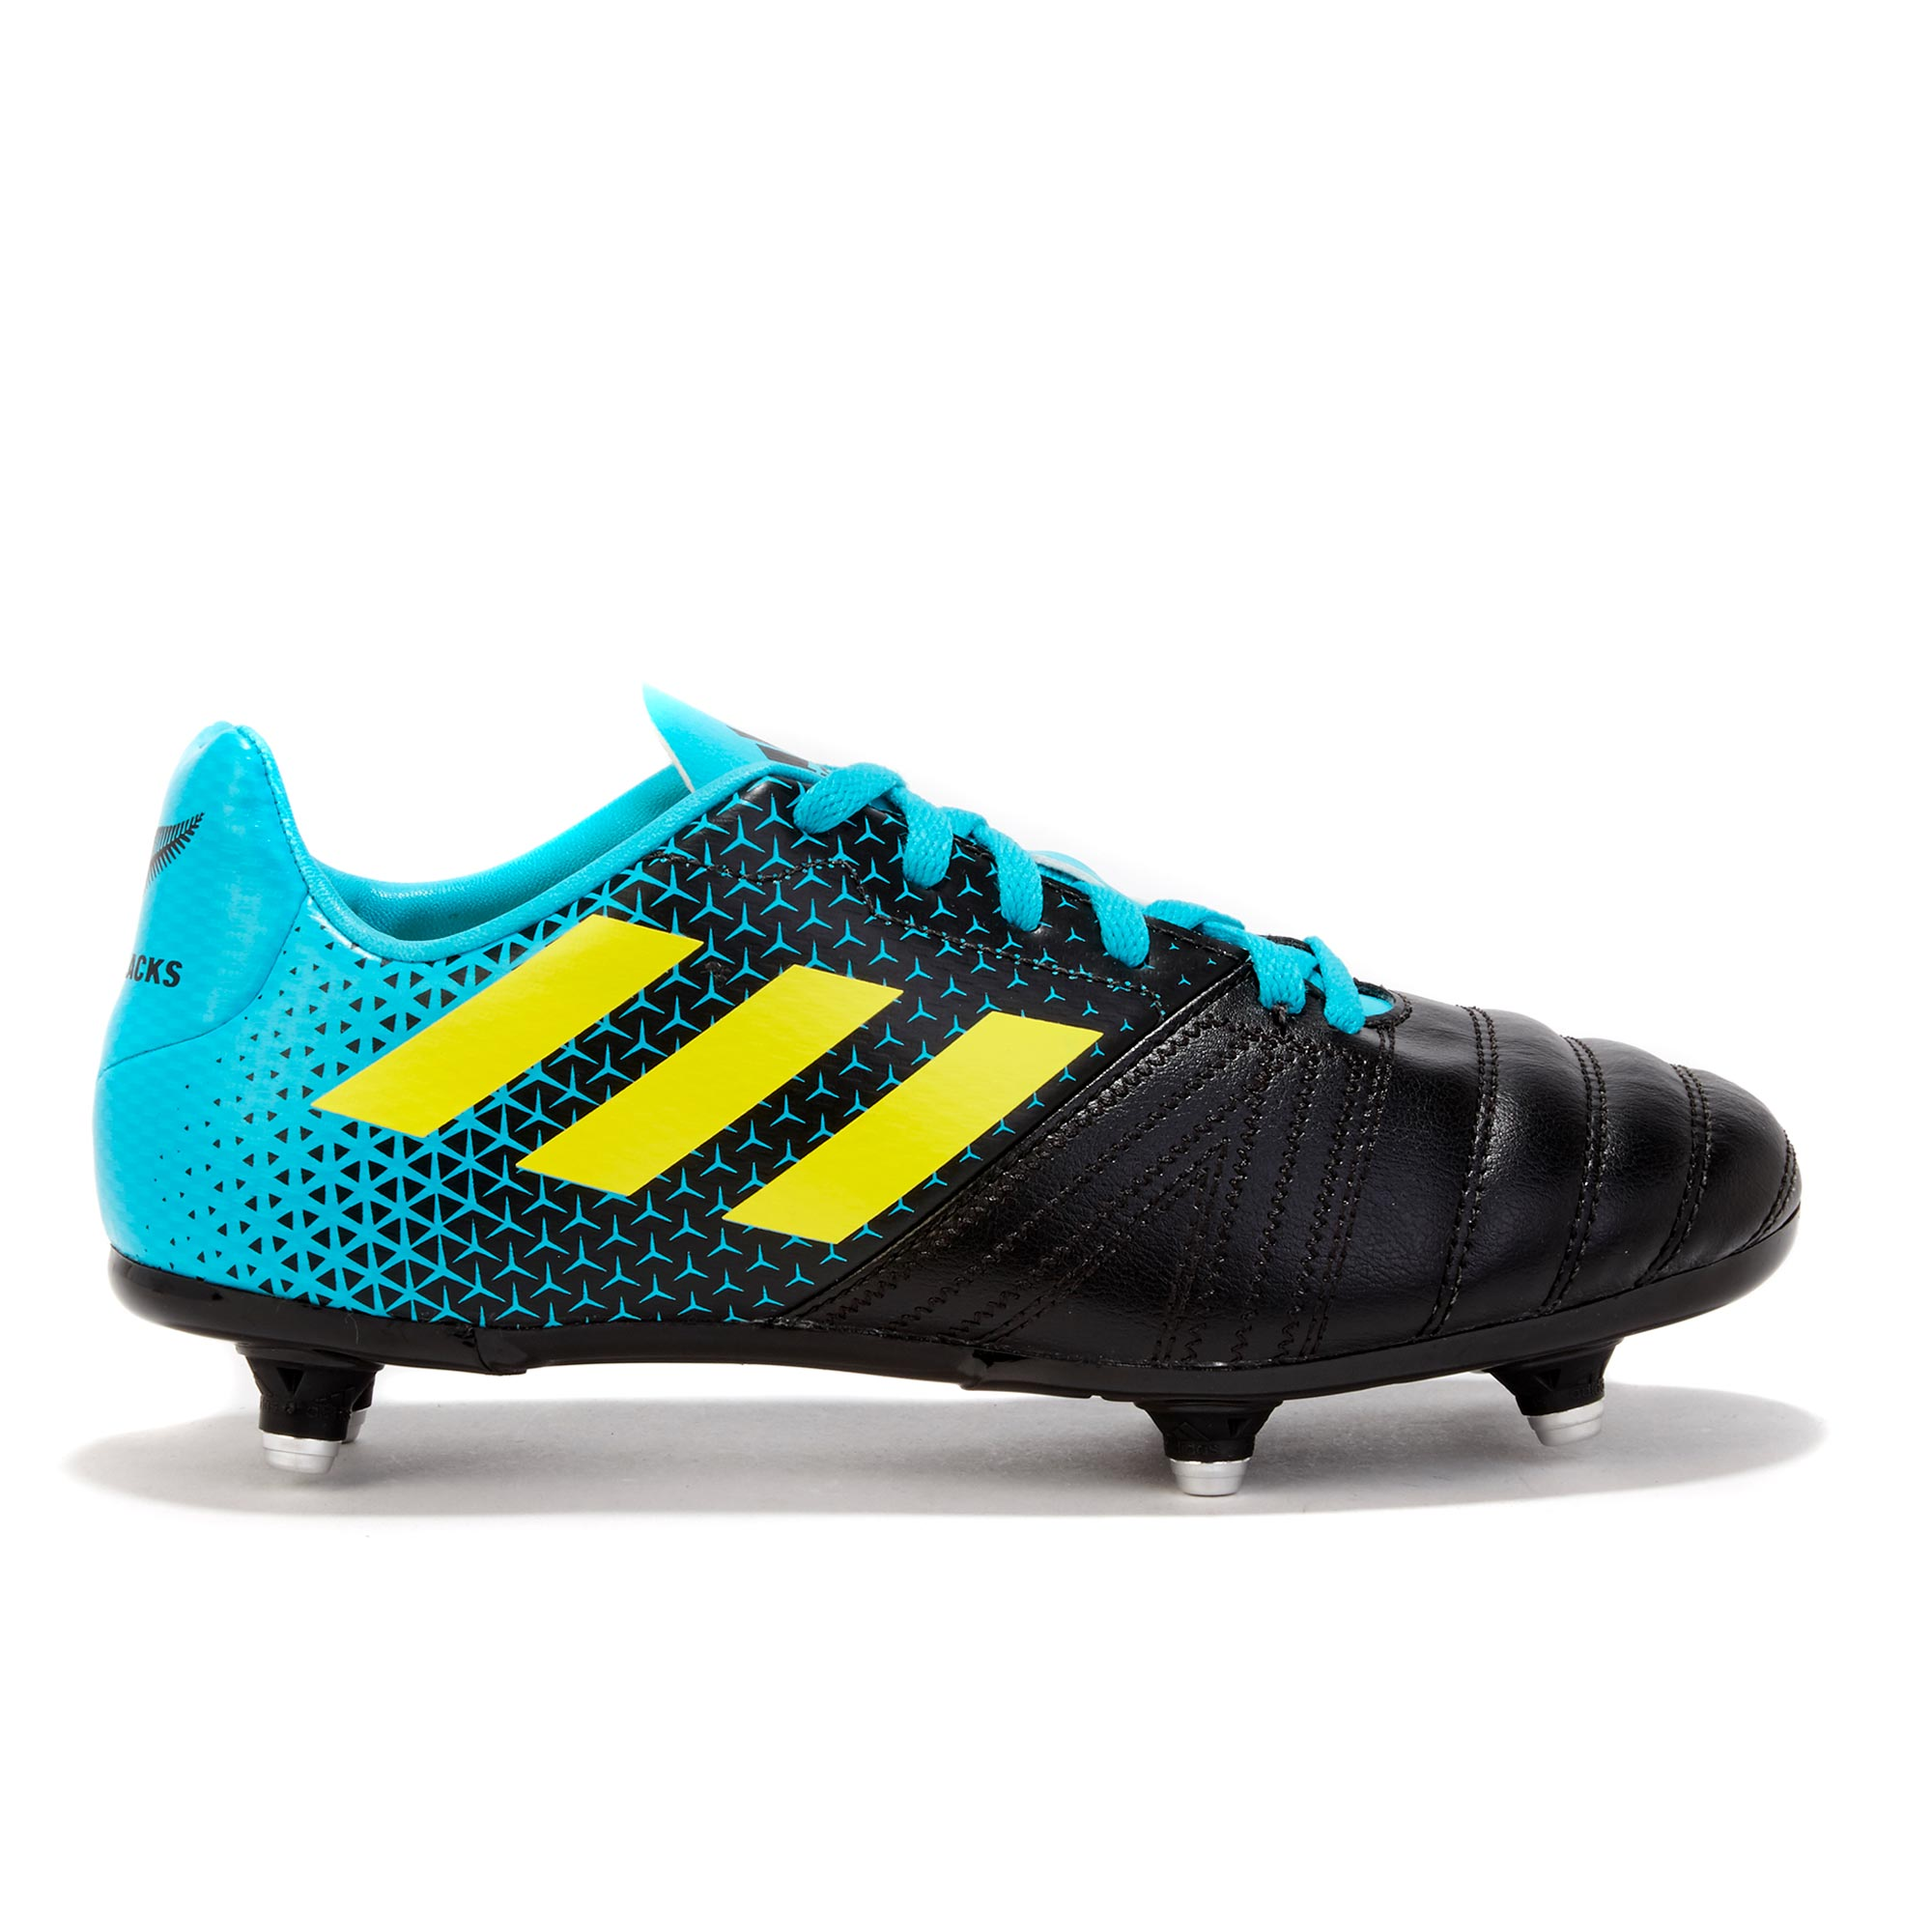 "Image of ""adidas All Blacks - Soft Ground Rugby Boot - Aqua/Yellow/Black - Junior"""